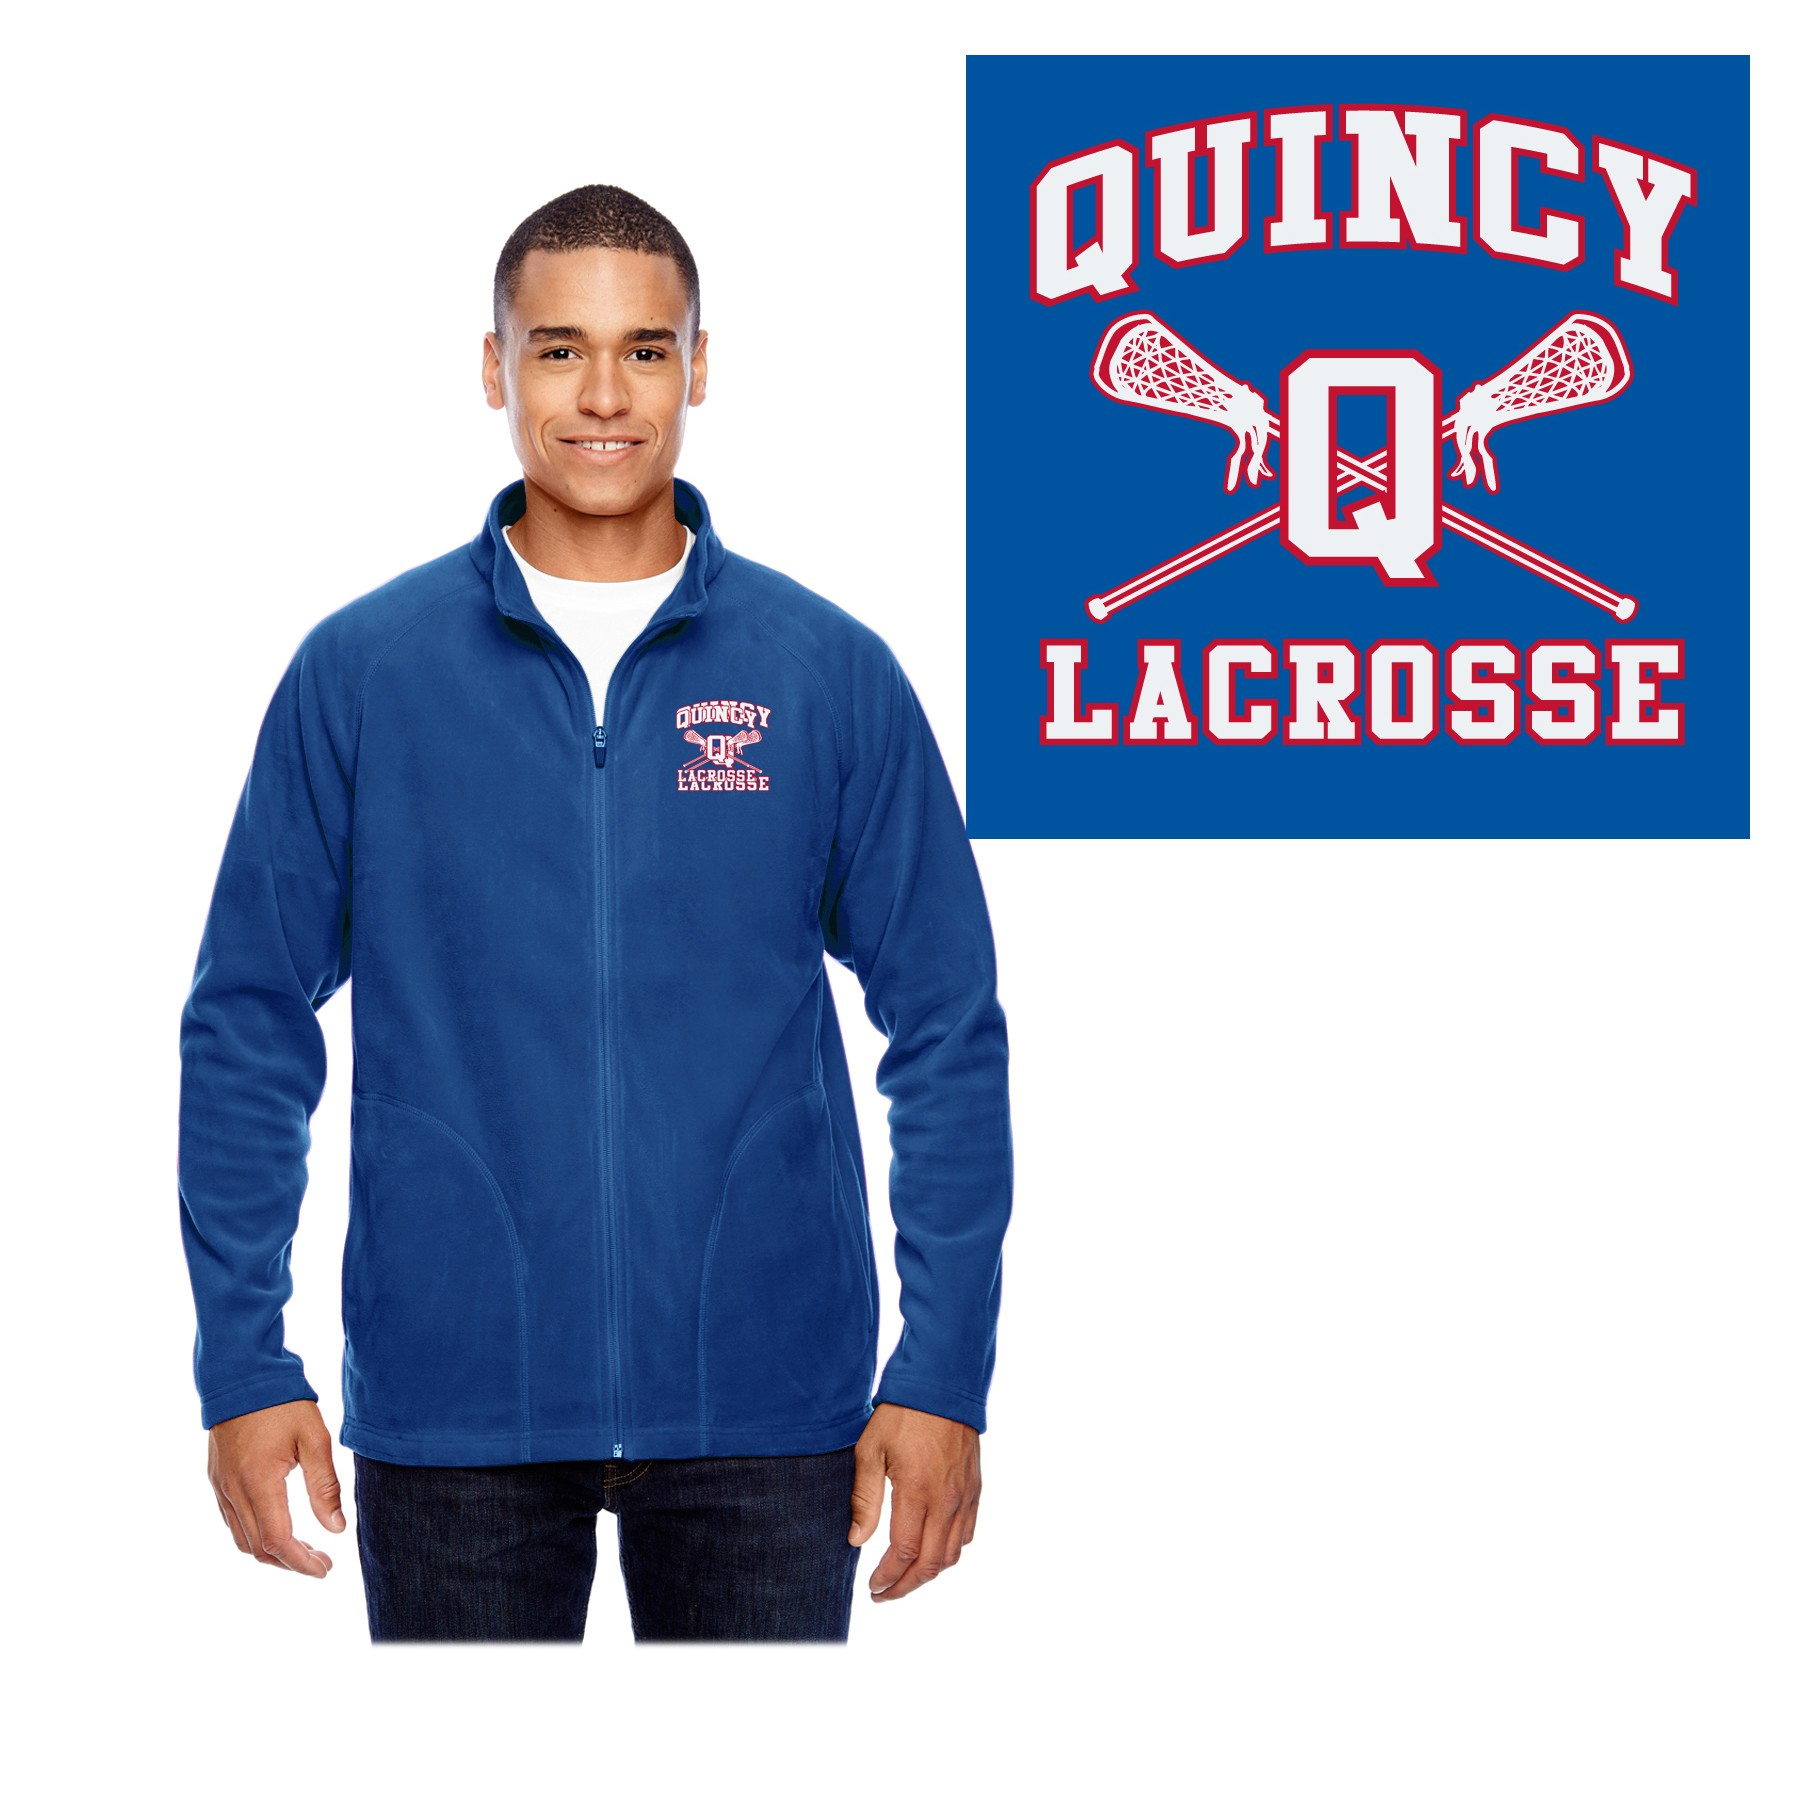 Quincy Lacrosse Team 365 Men's Campus Microfleece Jacket TT90